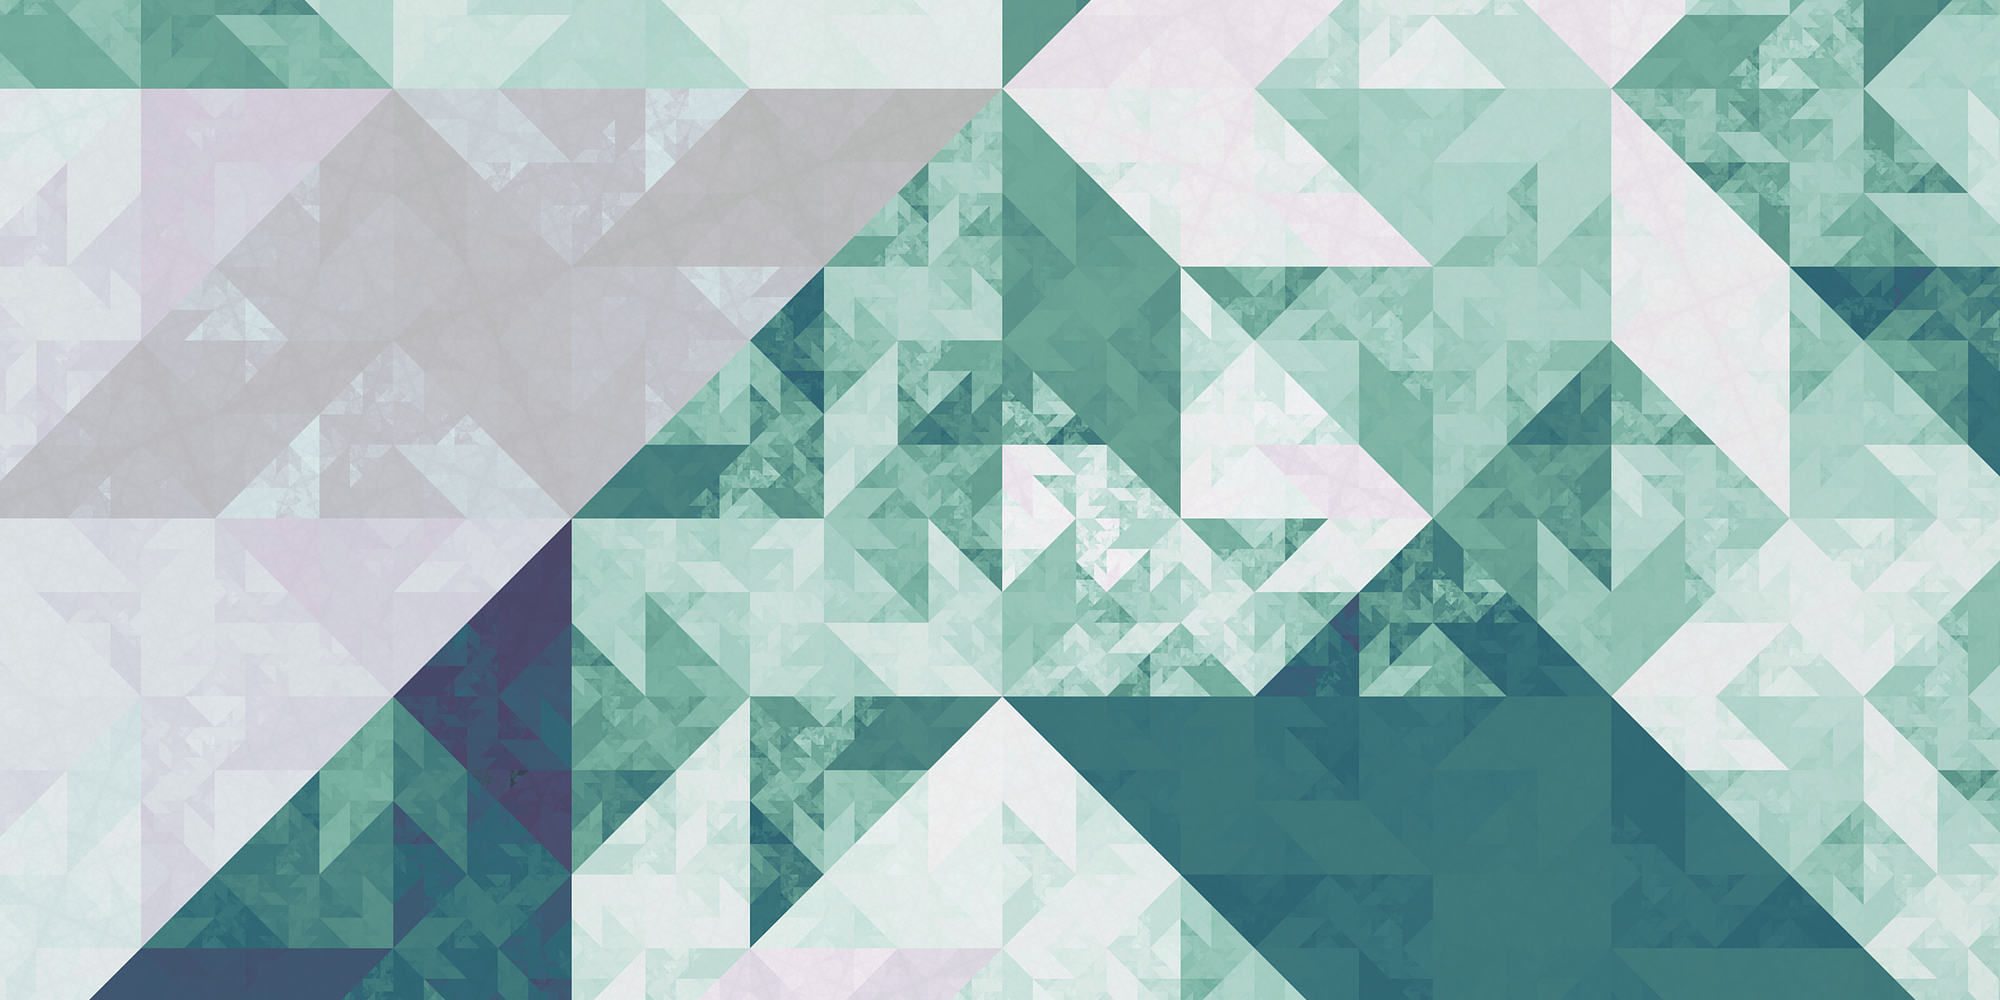 Geometric Designs Hd Wallpaper Triangle Geometric Patterns Png 1684930 Hd Wallpaper Backgrounds Download